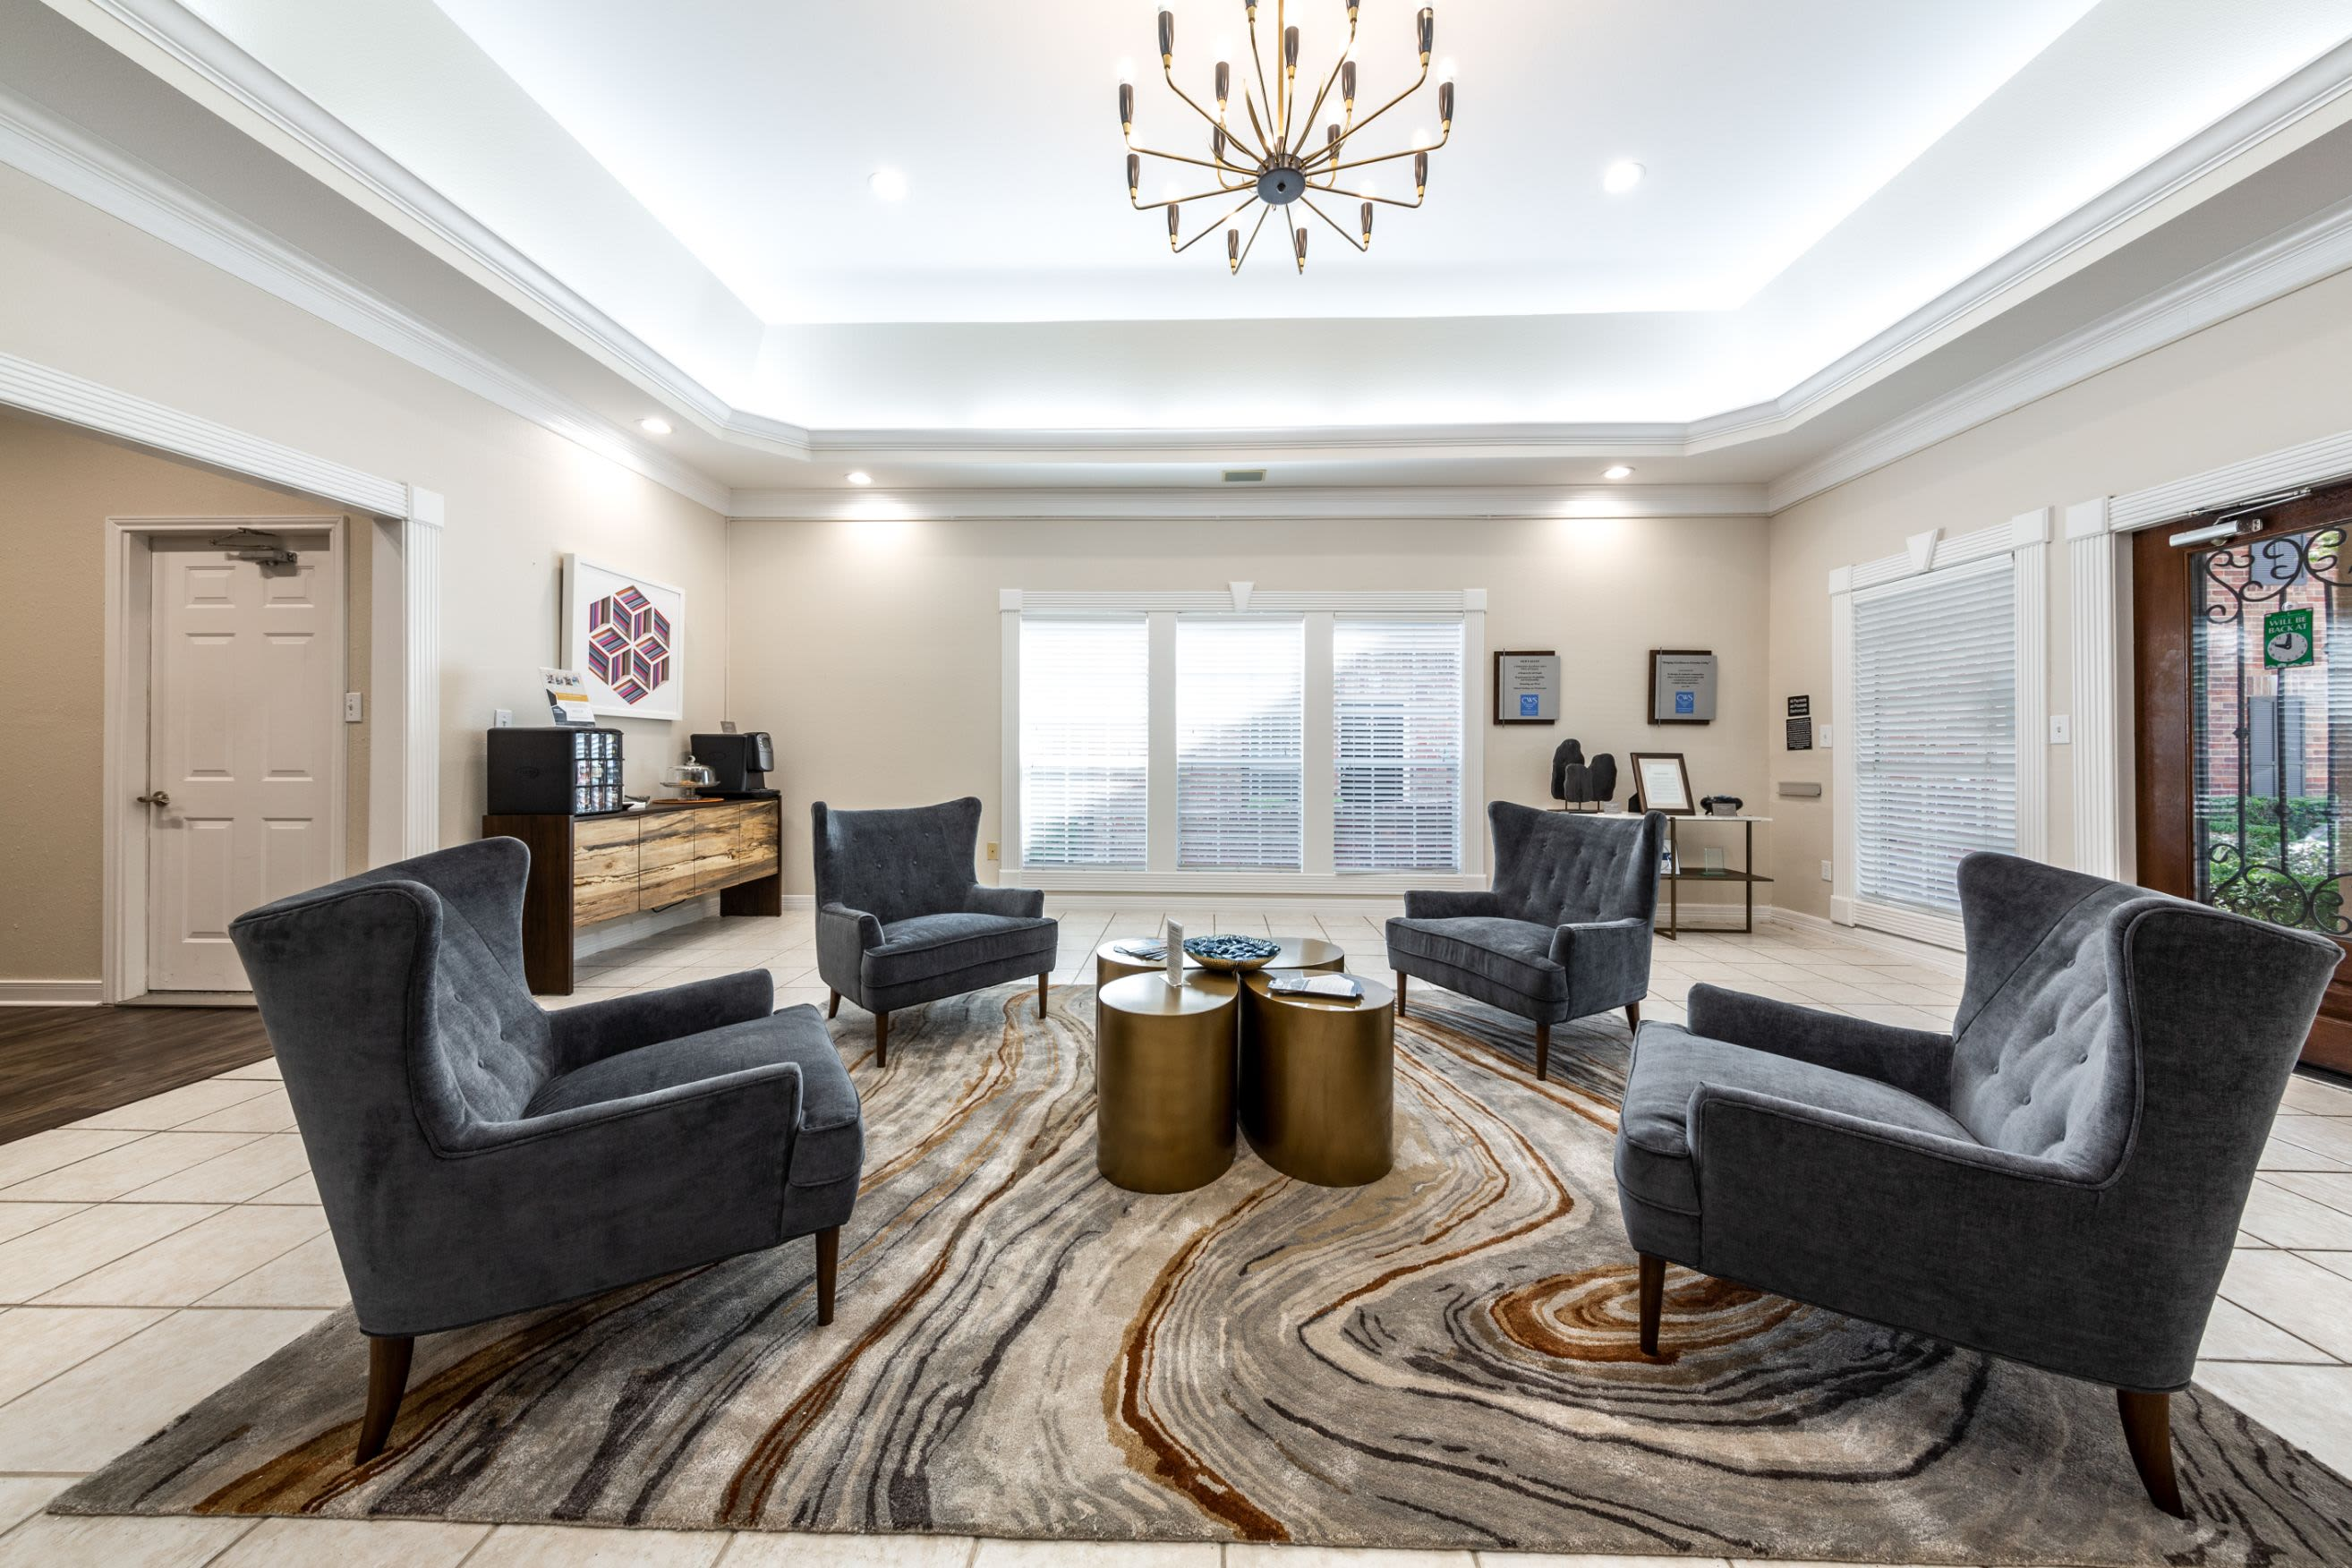 Lobby area with plush chairs at Marquis on Memorial in Houston, Texas